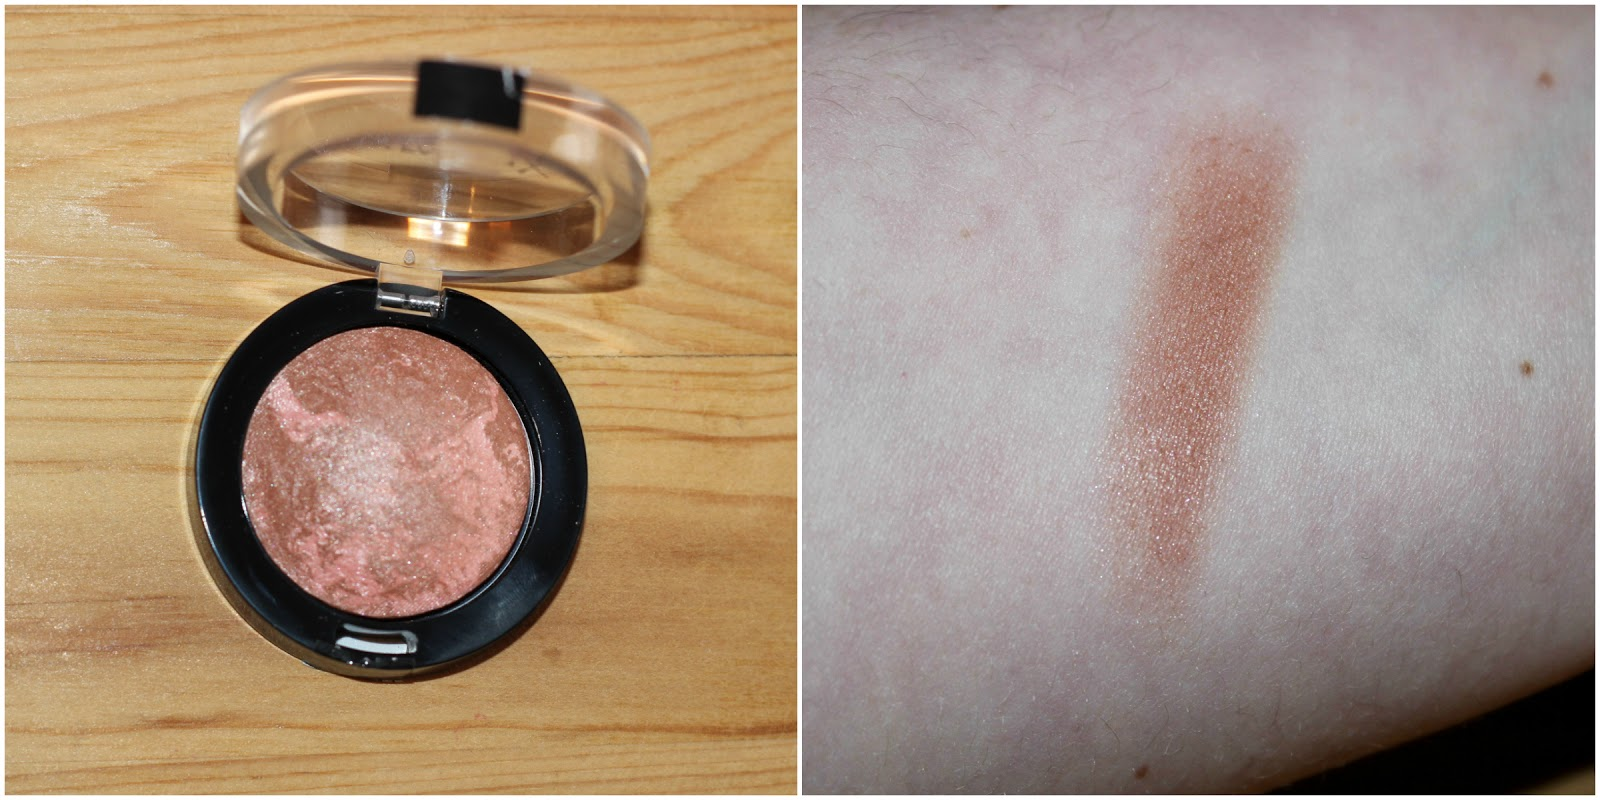 Maxfactor Creme Puff Blush In Nude Mauve Swatch